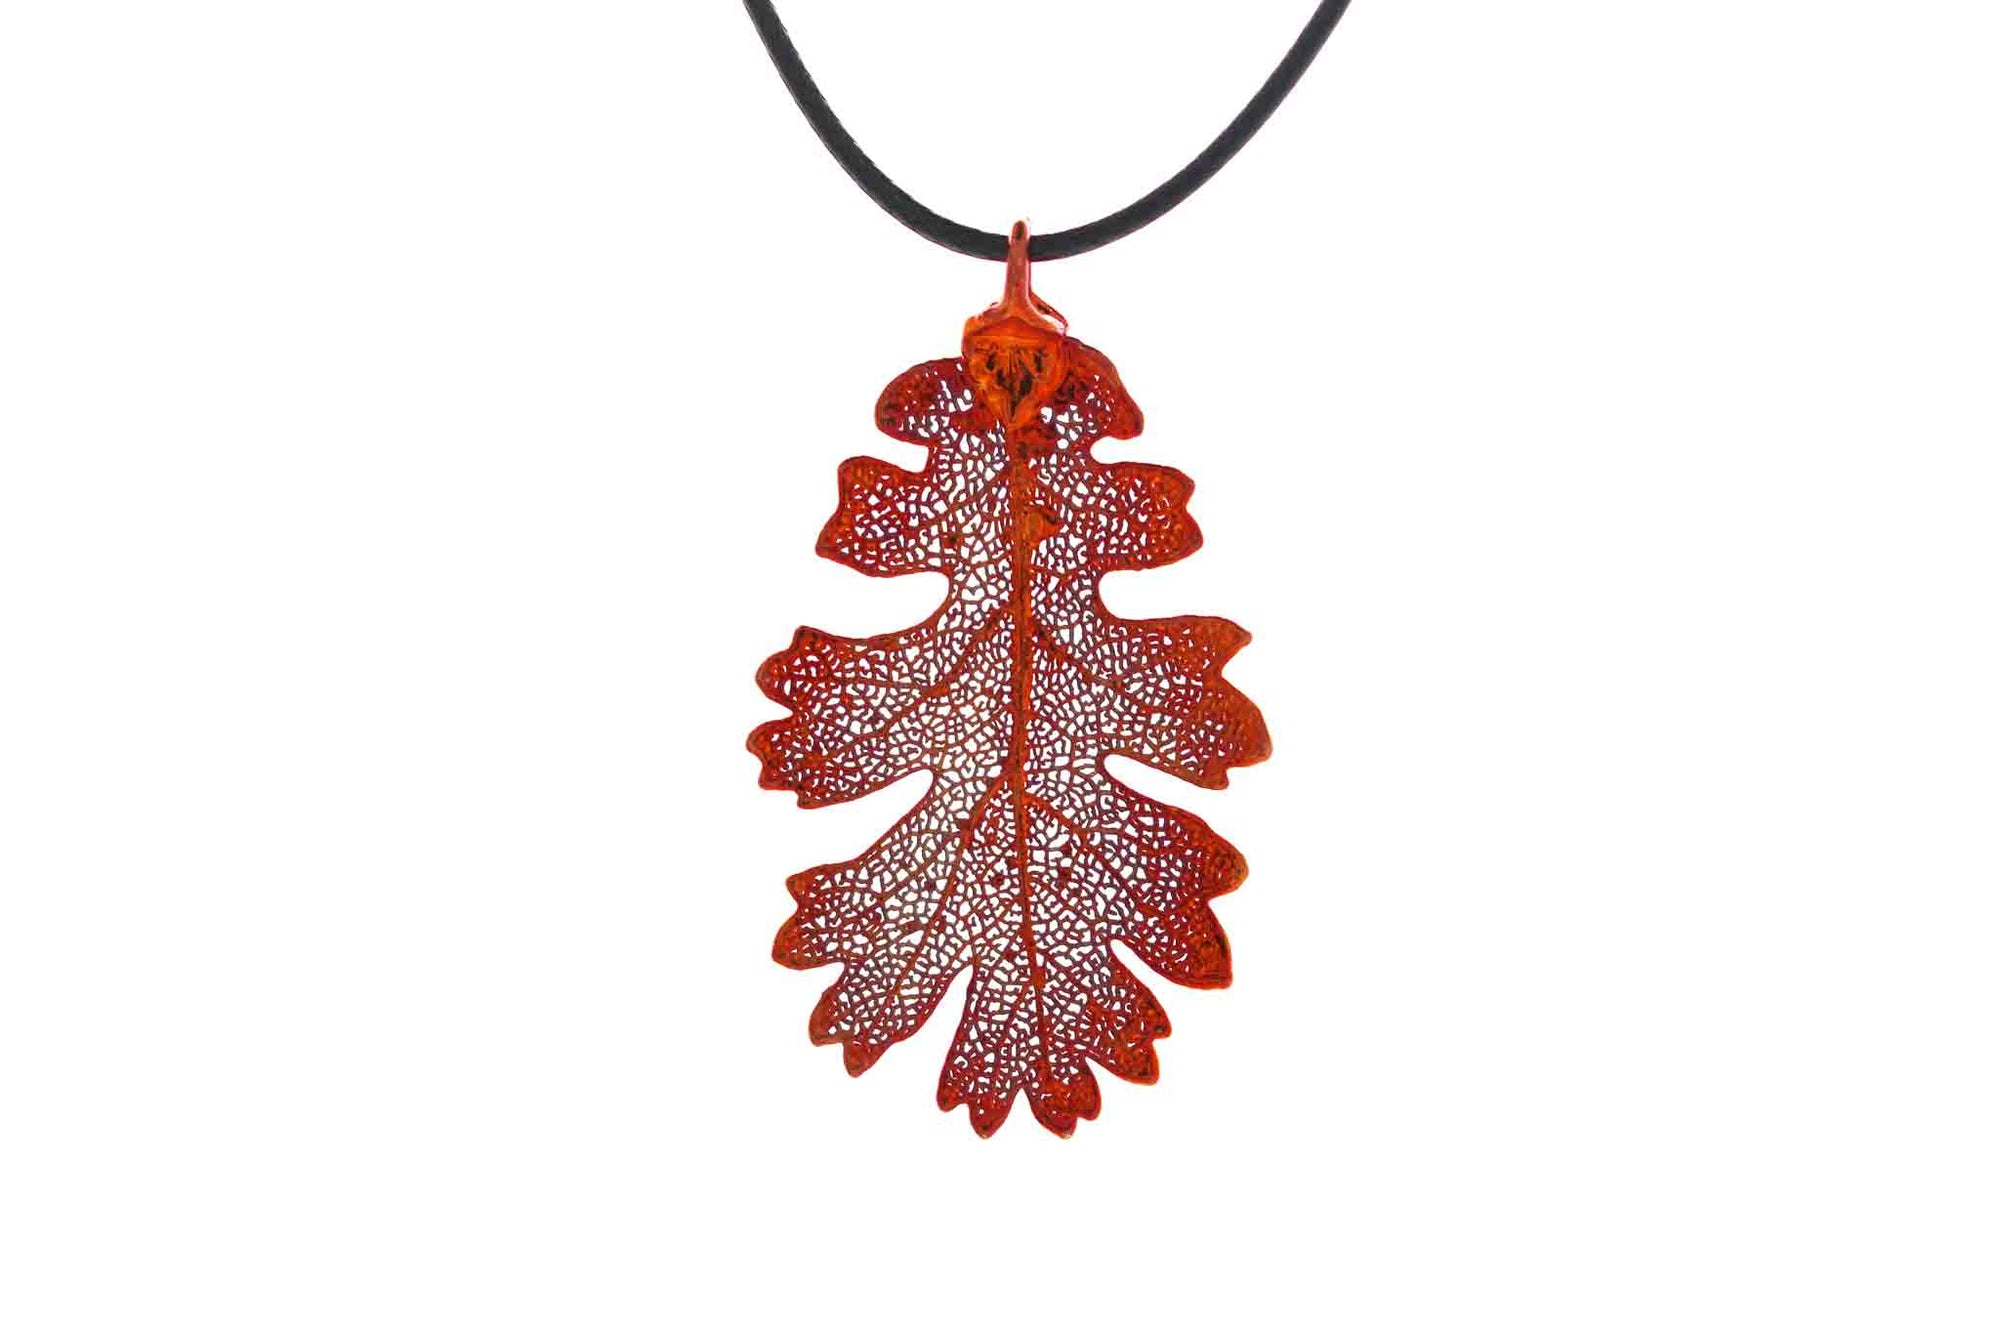 Real Oak Leaf Necklace In Iridescent Copper - Black Cord